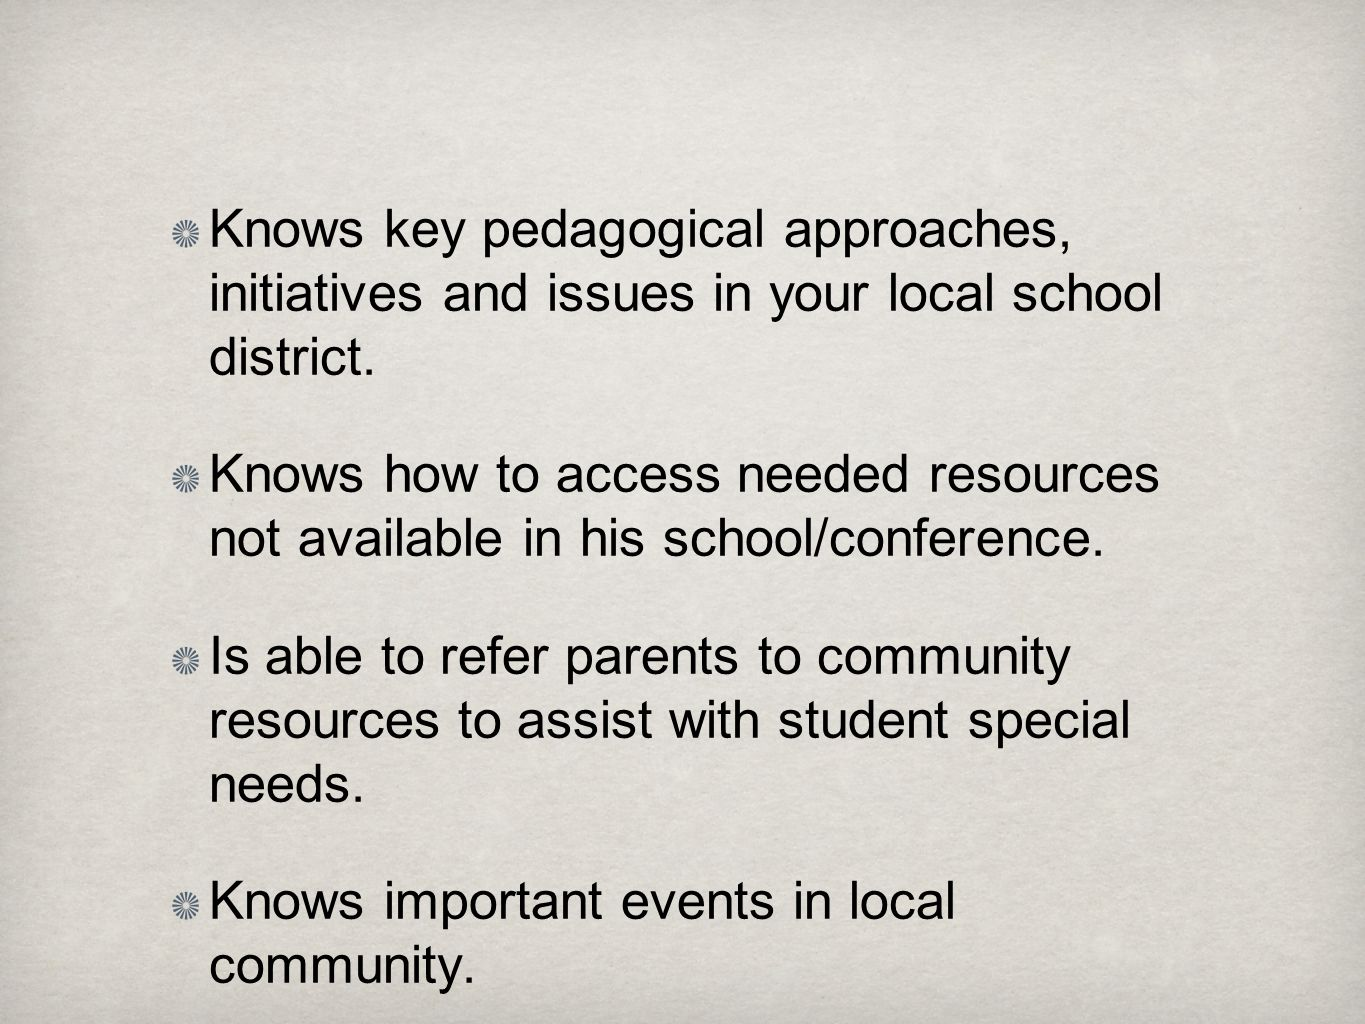 Knows key pedagogical approaches, initiatives and issues in your local school district.